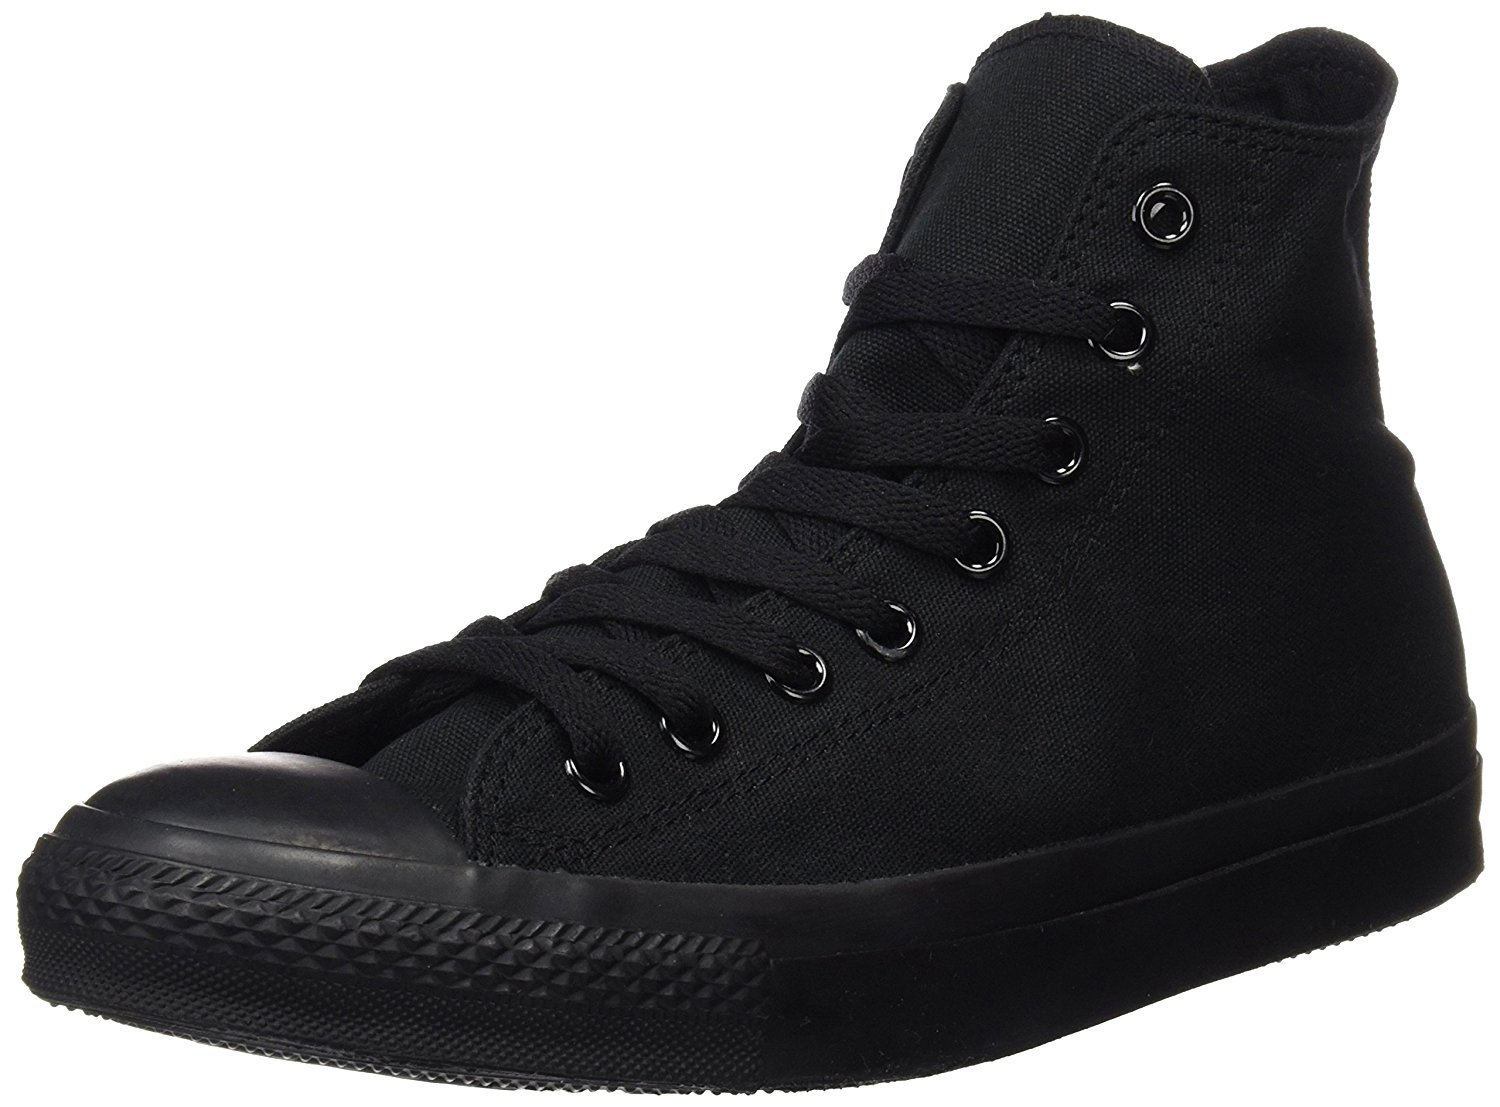 Converse Unisex Chuck Taylor All Star High Top Sneakers Black/White (6 B(M) US Women / 4 D(M) US Men, Black Monochrome)